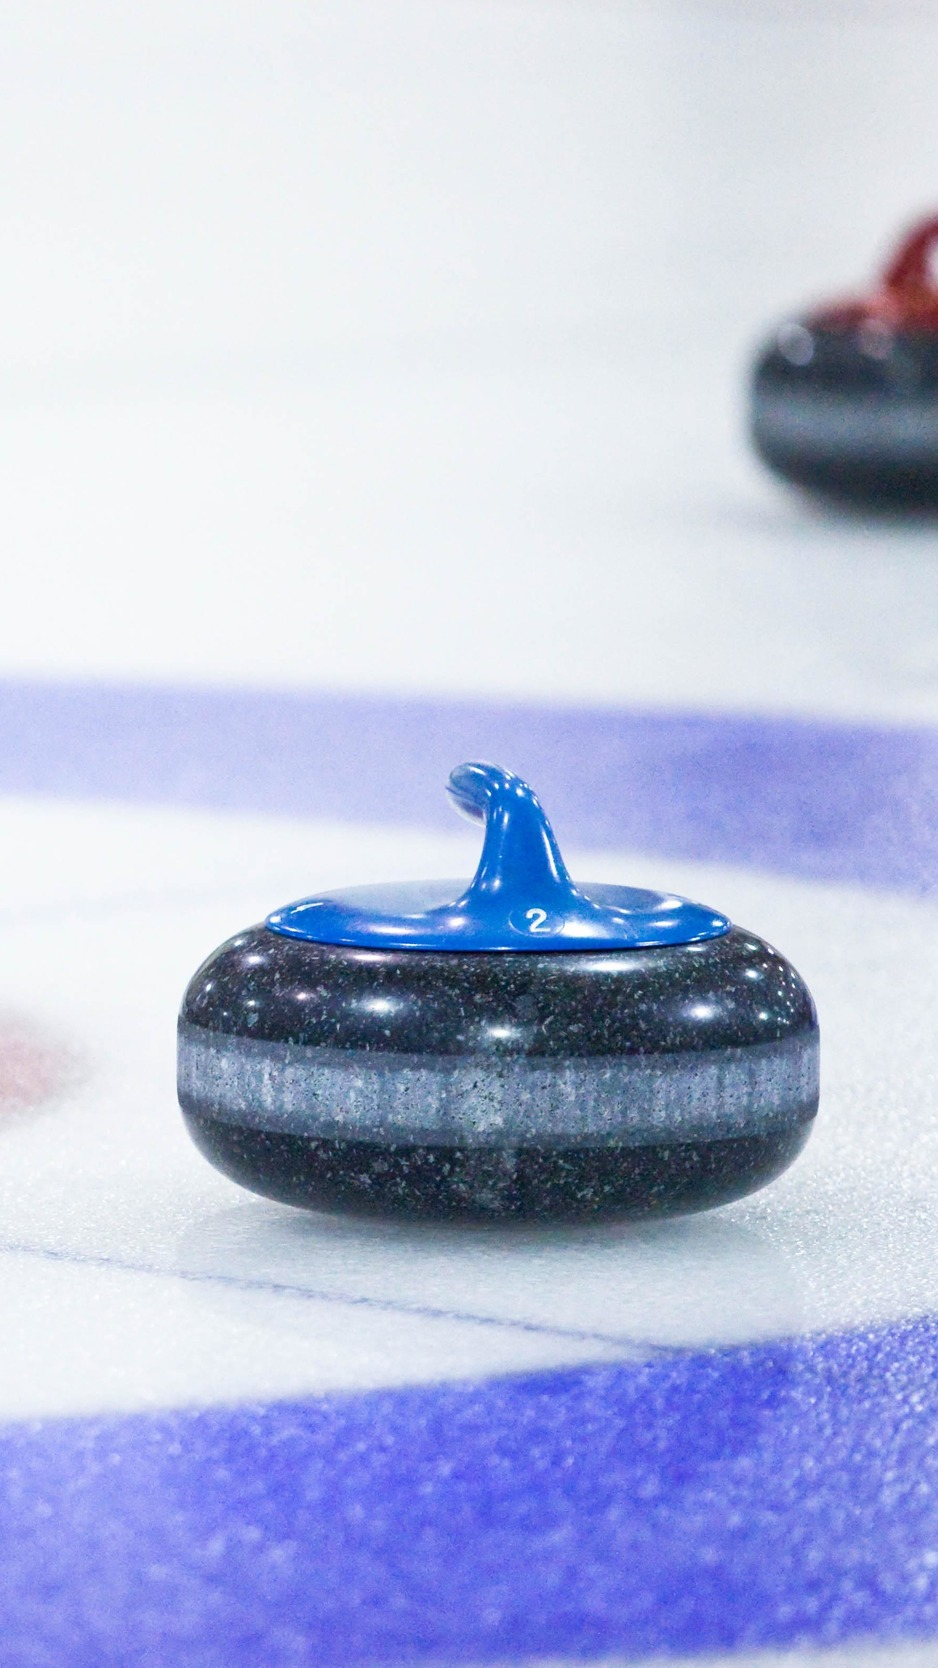 938x1668 - Curling Wallpapers 10